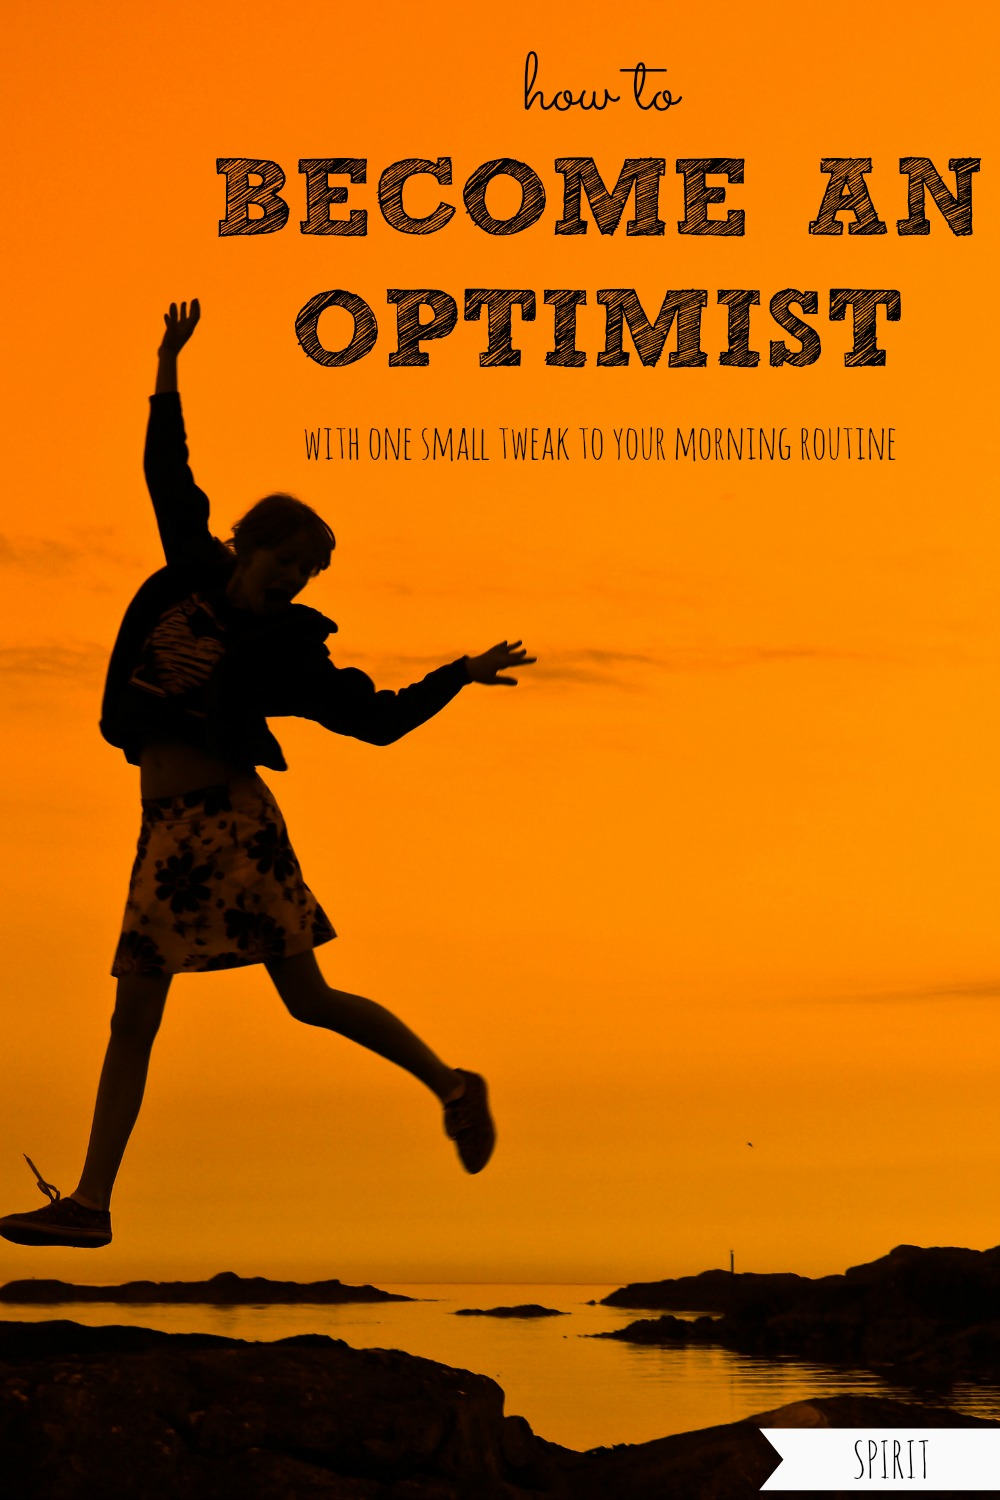 Ever struggle to maintain a positive outlook in the midst of difficulties? Here's how to become an optimist with just one small tweak to your morning routine! #how #to #become #optimist #optimists #optimistic #positive #mindset #difficulties #difficulty #pessimist #pessimists #pessimistic #small #adjustment #morning #mornings #routine #routines #start #day #thanks #gratitude #turn #problems #write #time